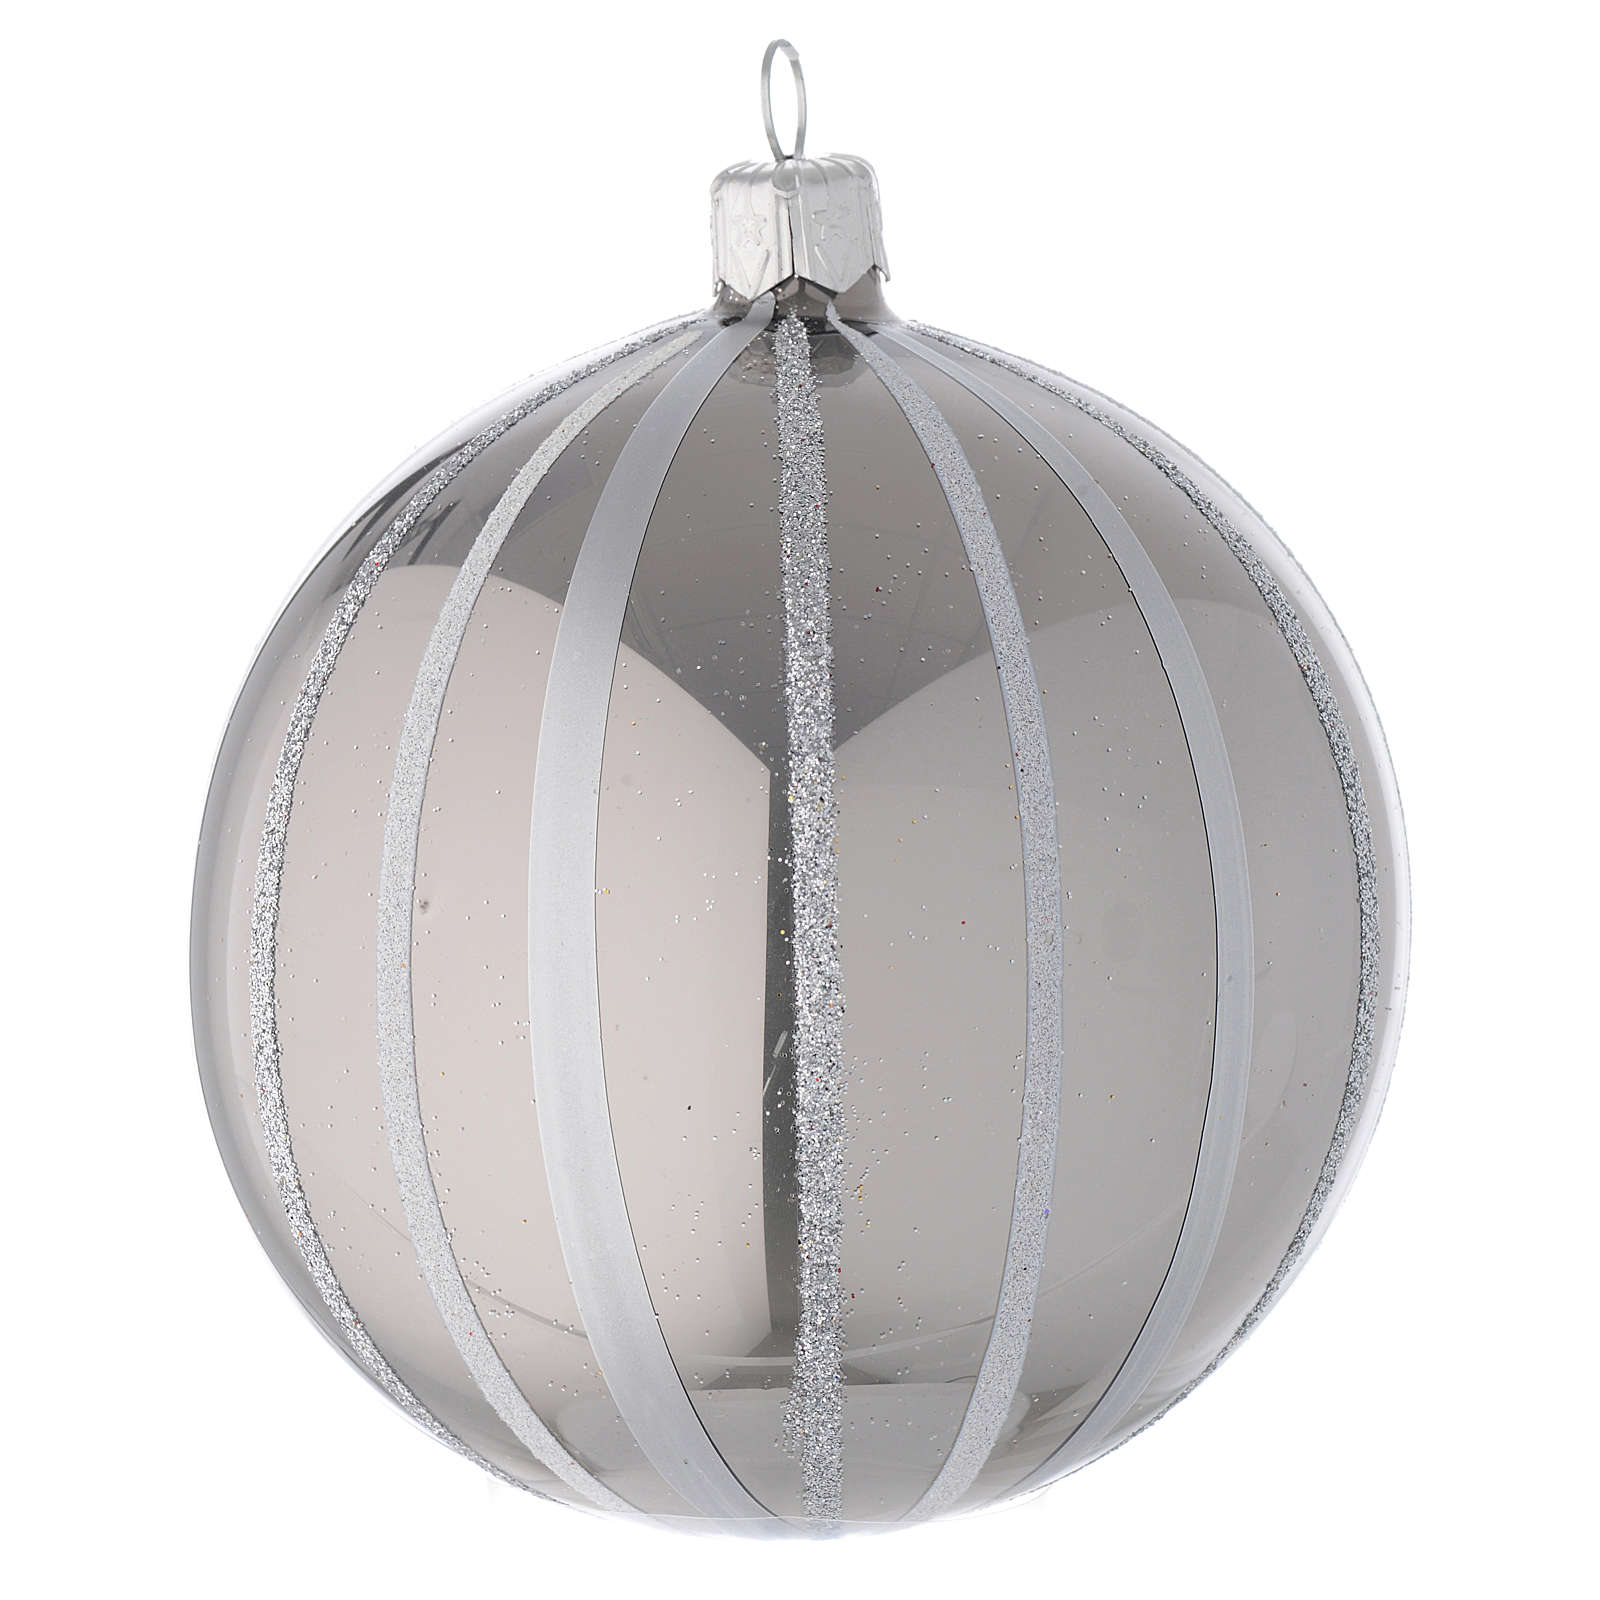 Bauble in silver blown glass with stripes 100mm 4